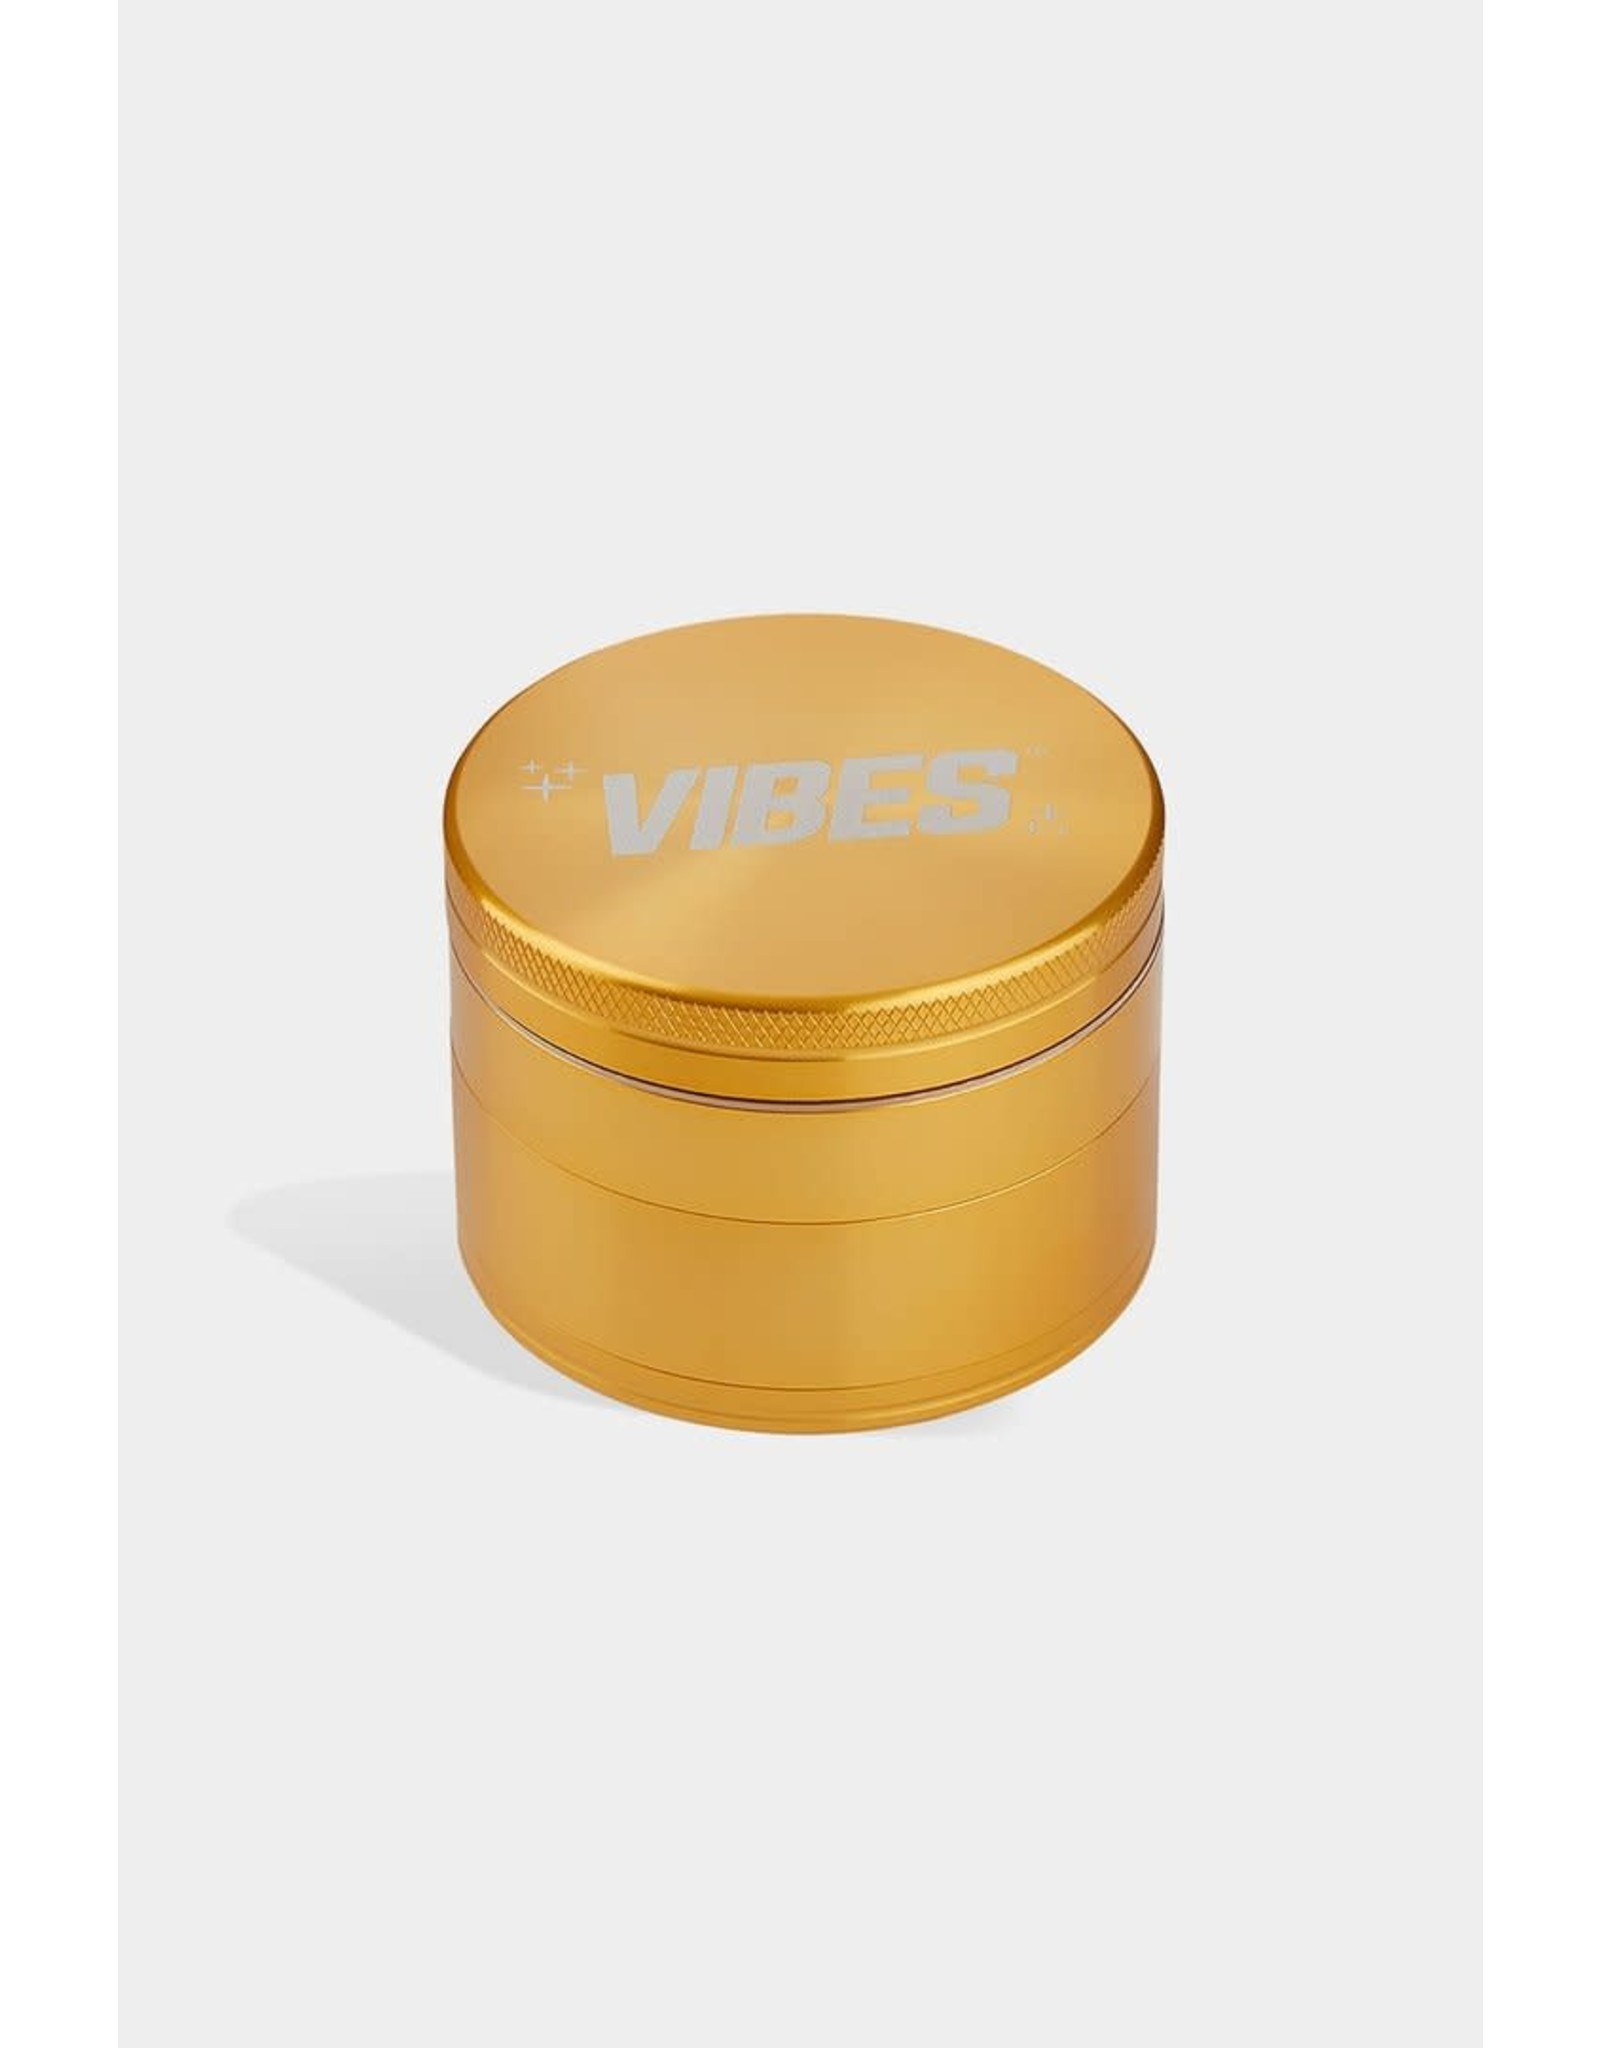 "Vibes Papers Vibes Aluminum 4pc grinder 2.5"" Gold"